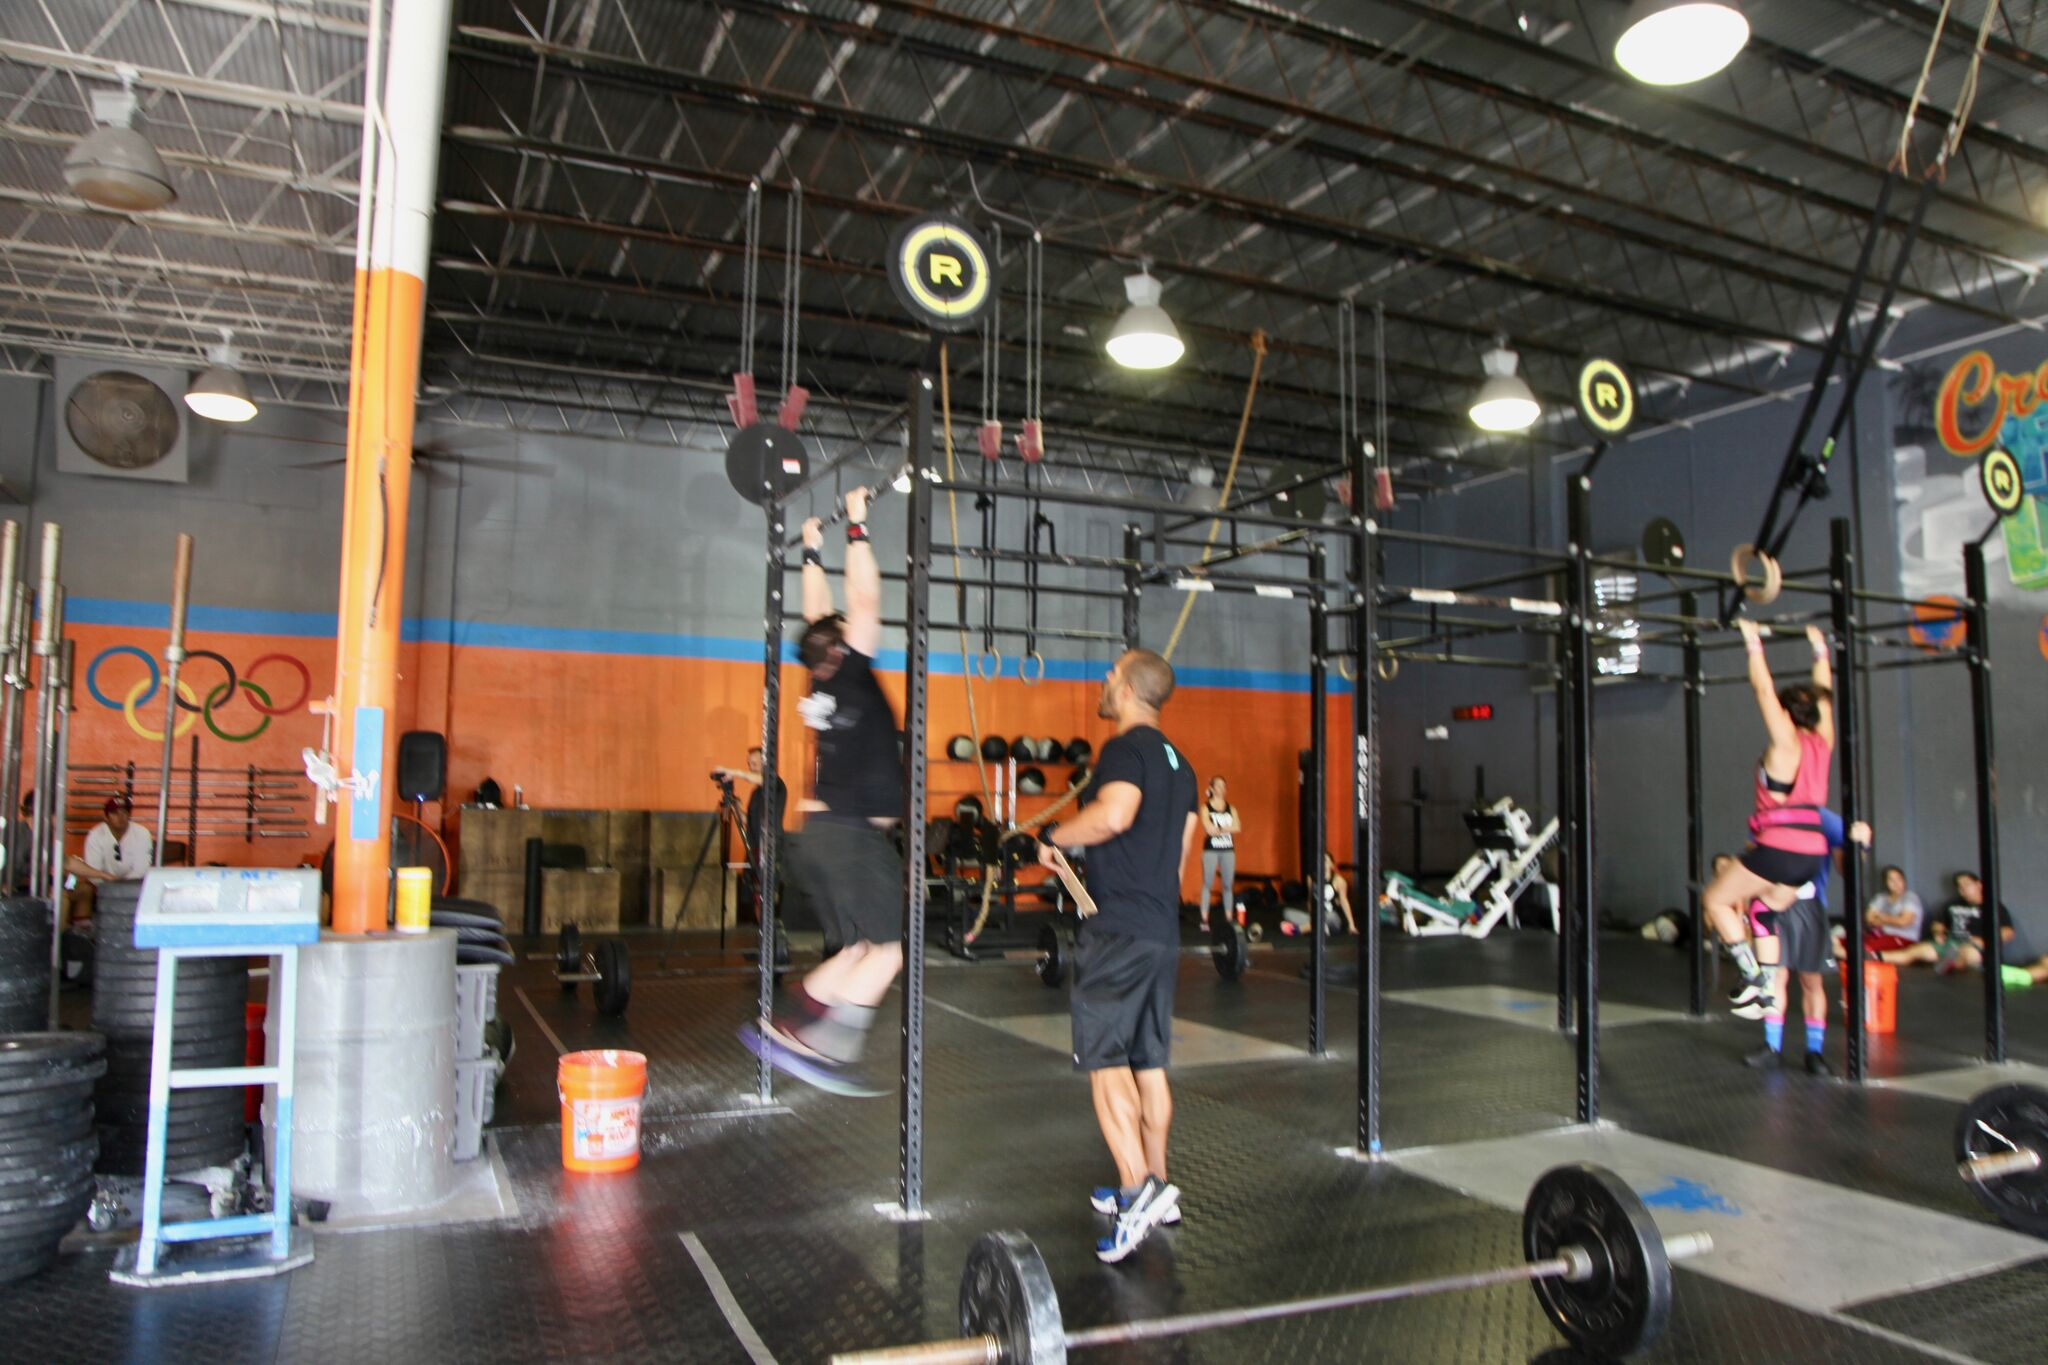 Garage gym miami fl dera jobs wallpaper